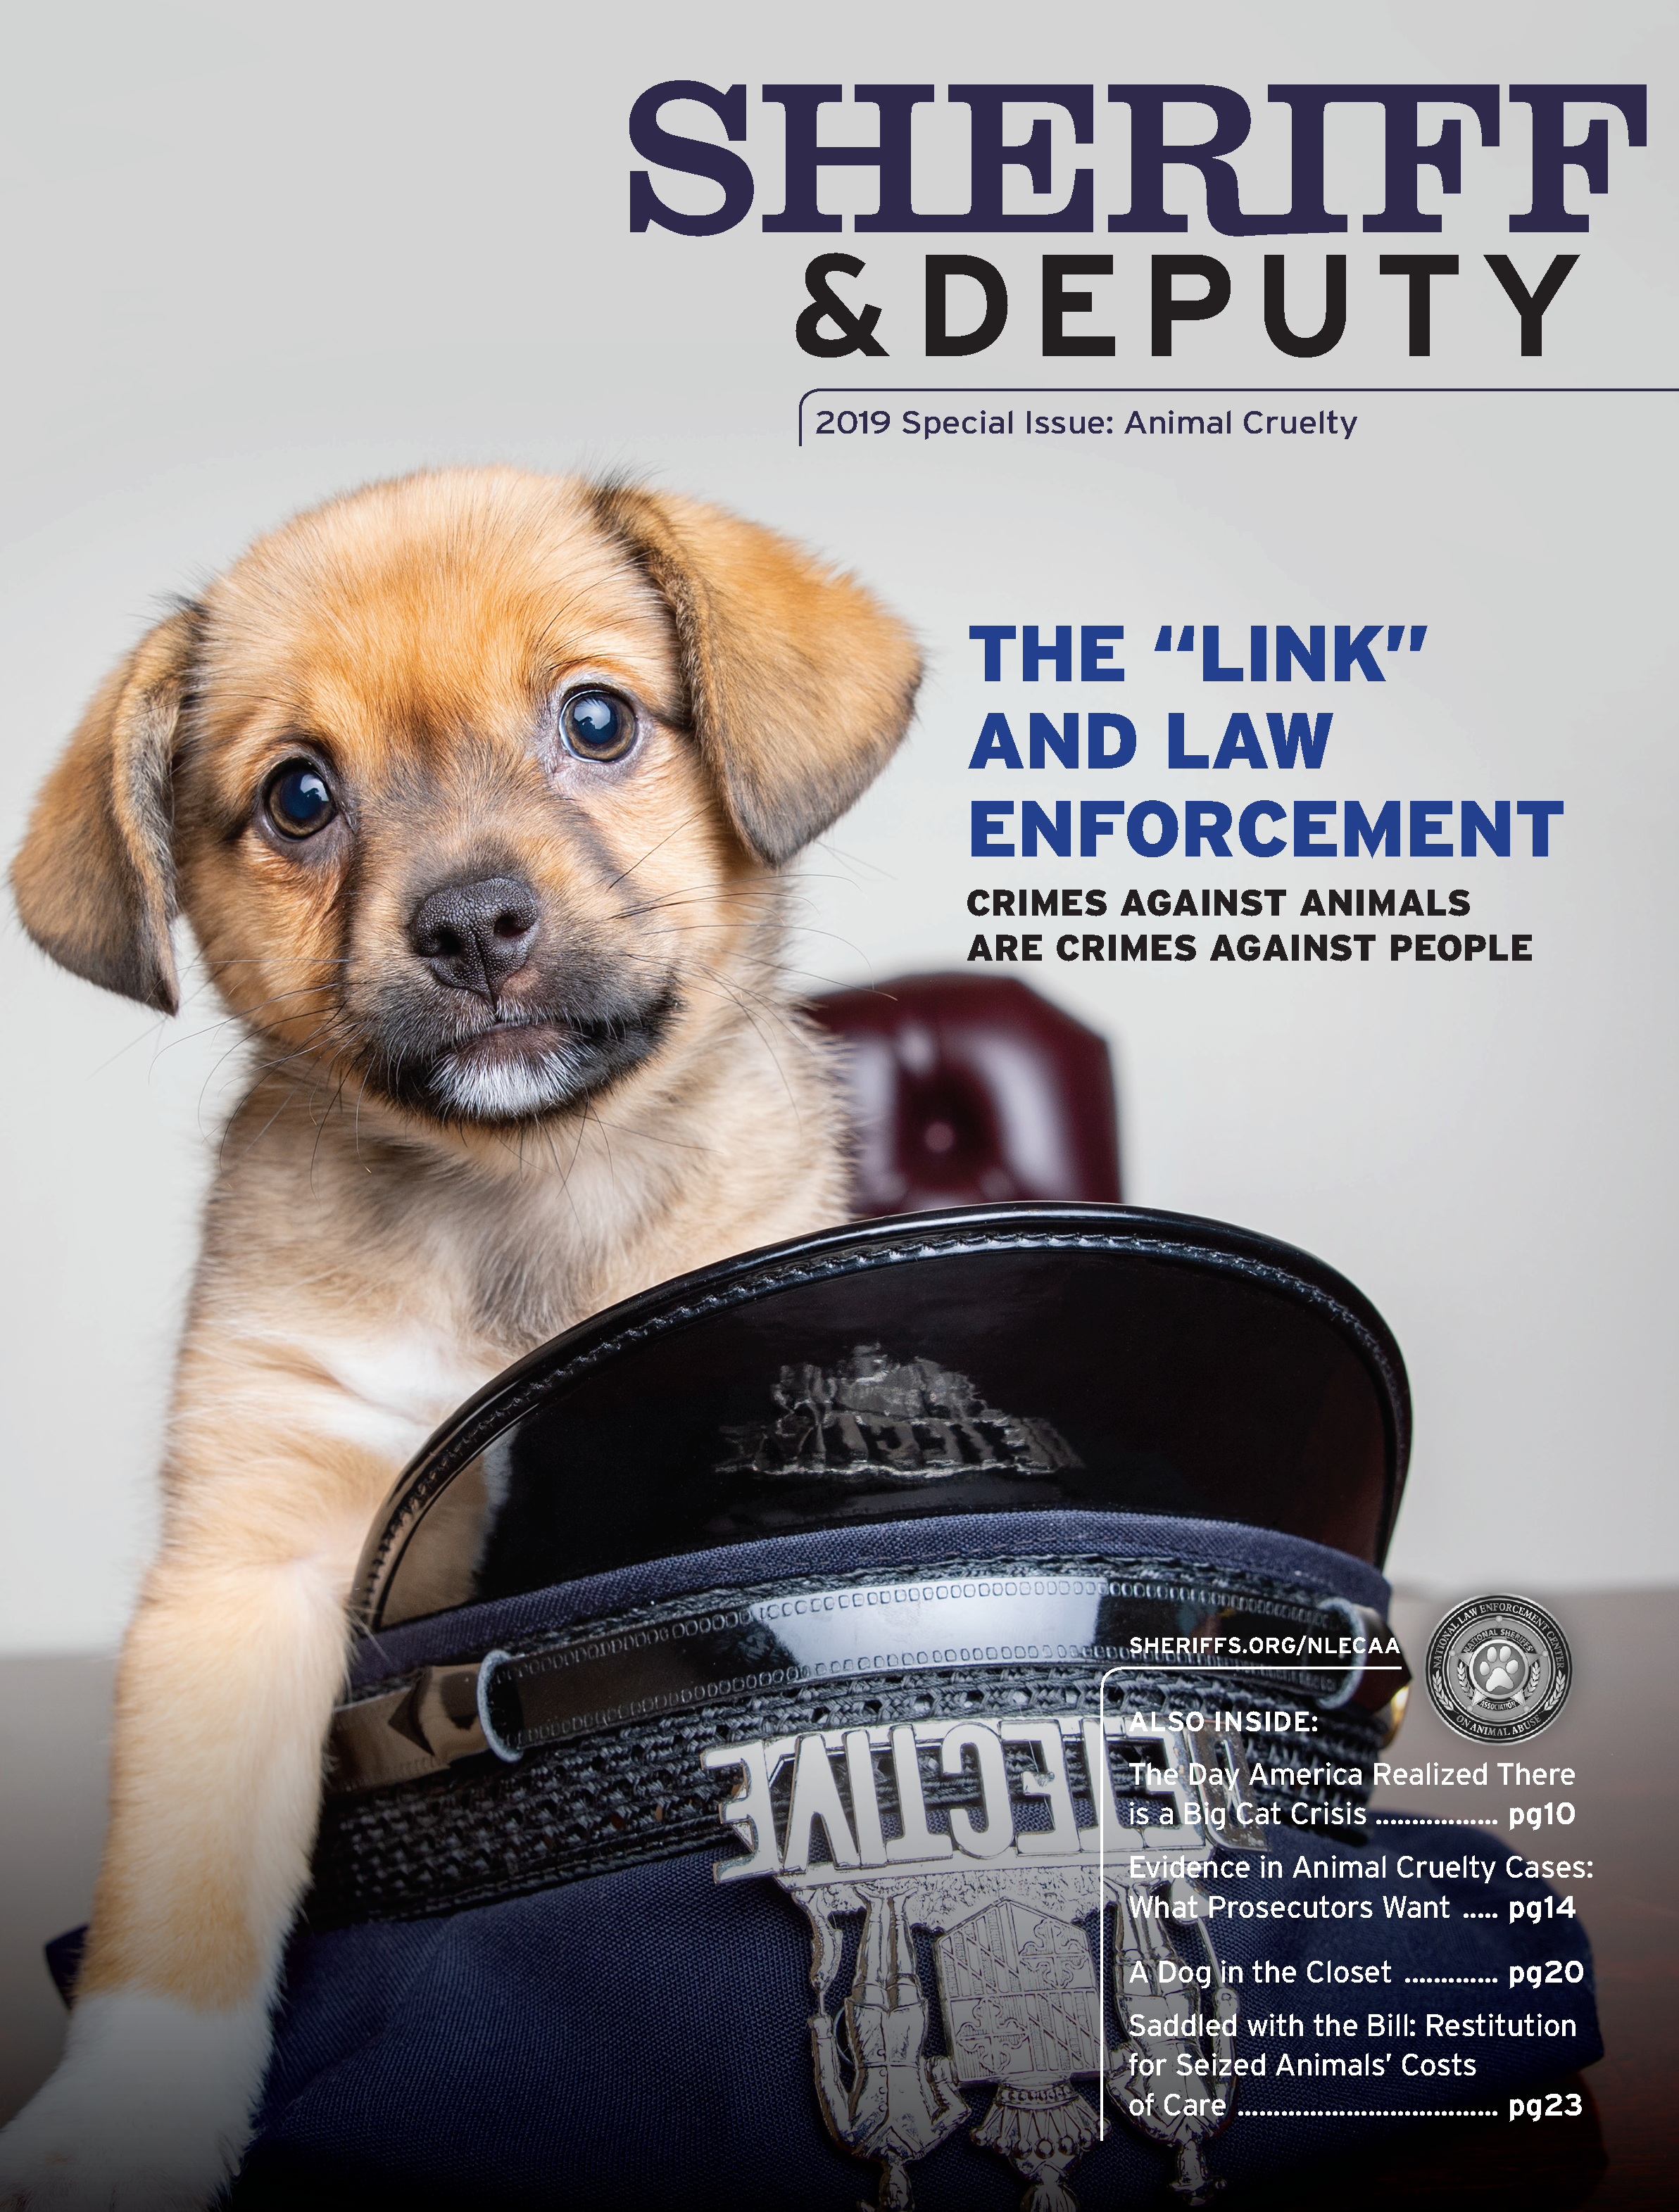 National Law Enforcement Center on Animal Abuse | NATIONAL SHERIFFS